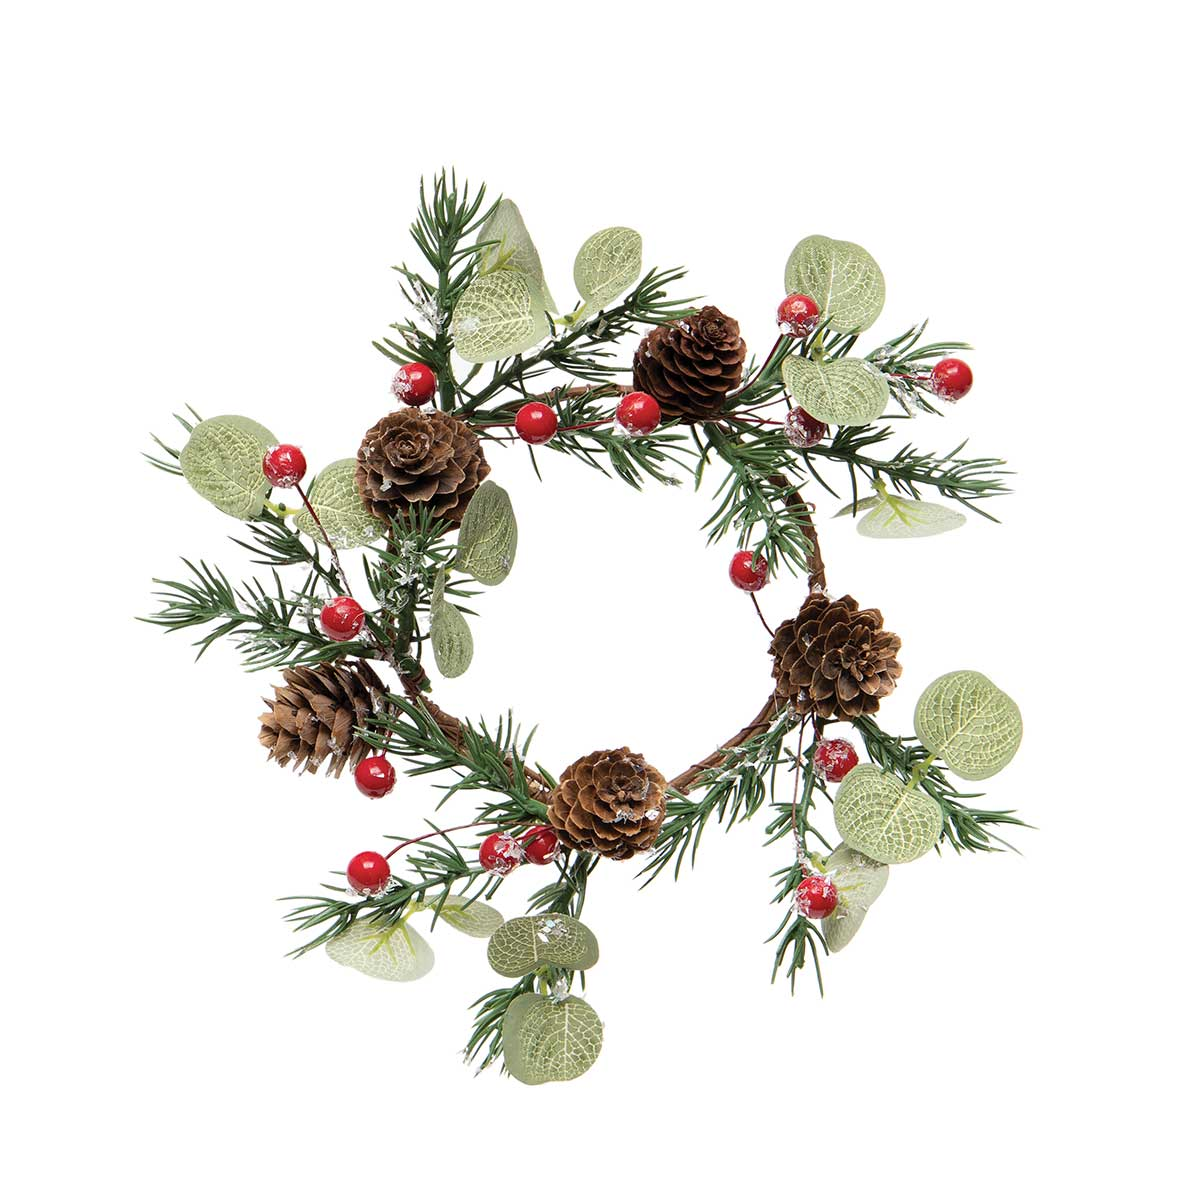 DECEMBER PINE CANDLE RING/MINI WREATH WITH RED BERRIES